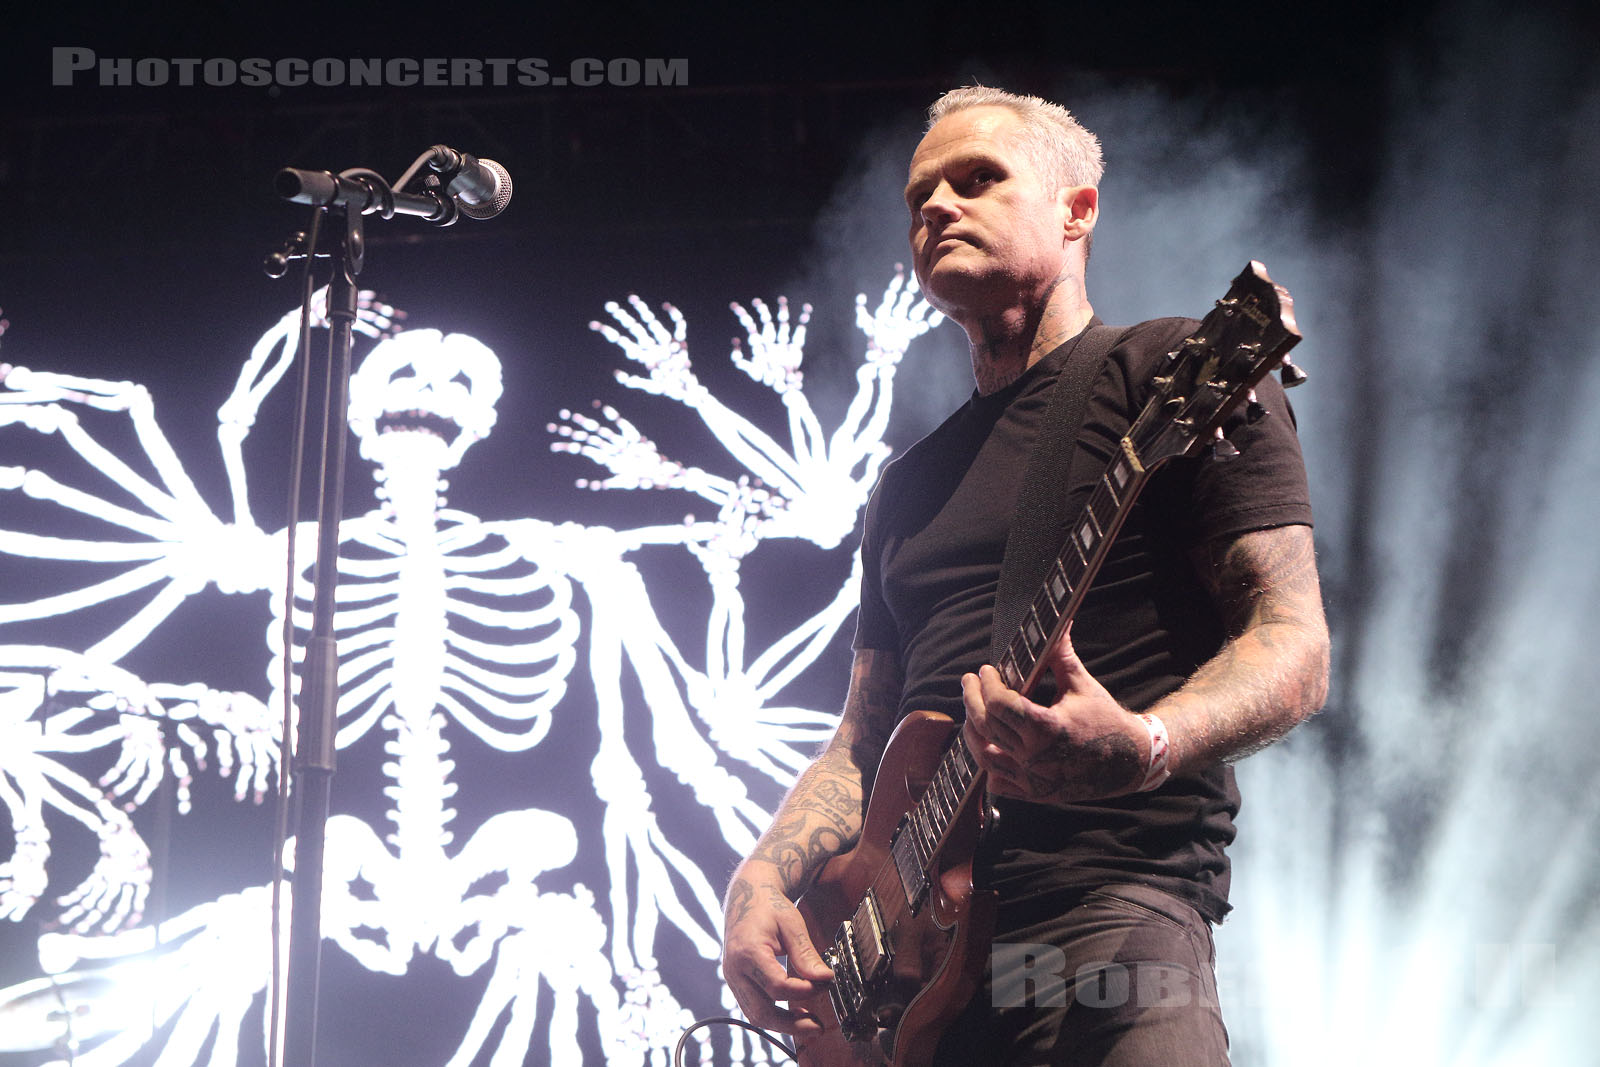 DEAD CROSS - 2018-06-03 - NIMES - Paloma - Flamingo